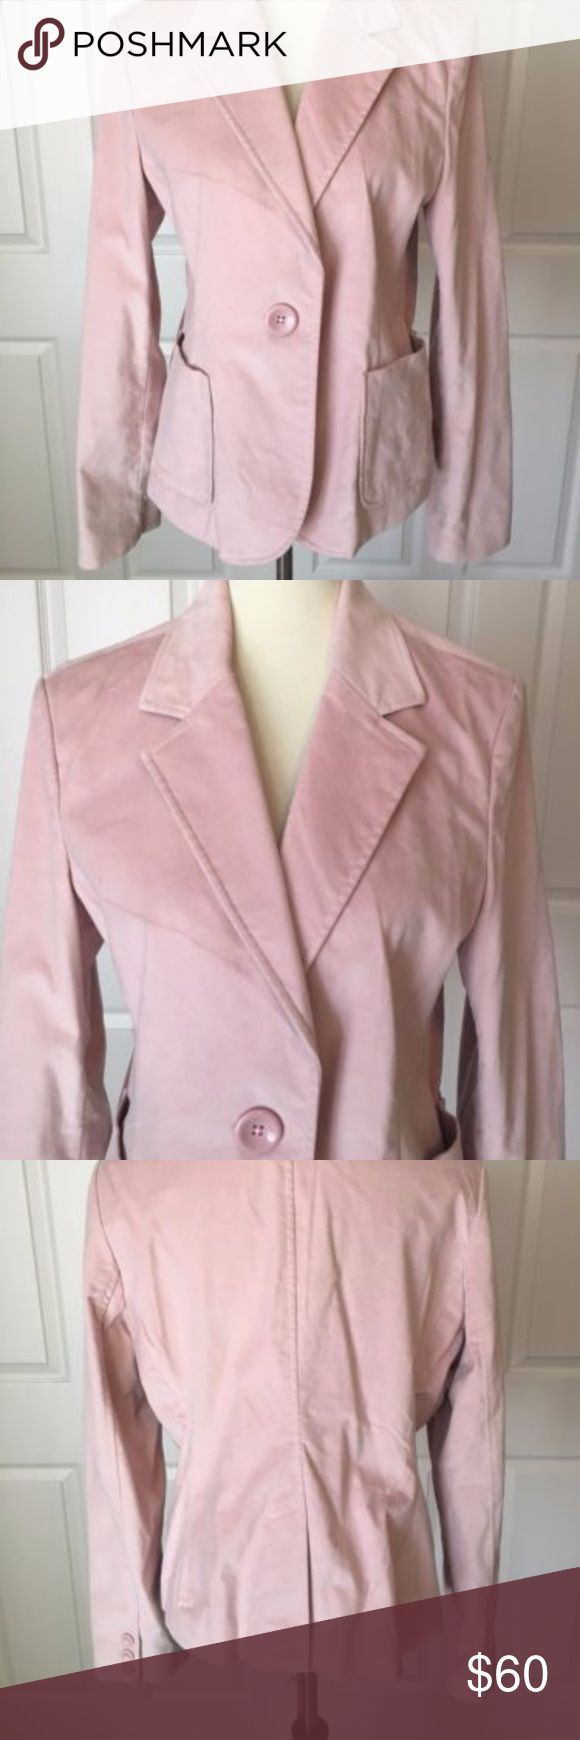 """Sale 🌸NWT Gap Pink Peacoat Plus Size 16 last drop NWT Gap Women's Peacoat  Powder Pink Plus Size 16  Soft Shell Fully Lined One Button front closure Retail price $198  Beautiful jacket, new with tags! Fully lined in floral print.   Armpit to armpit: 20"""" Length: 24"""" GAP Jackets & Coats Pea Coats"""